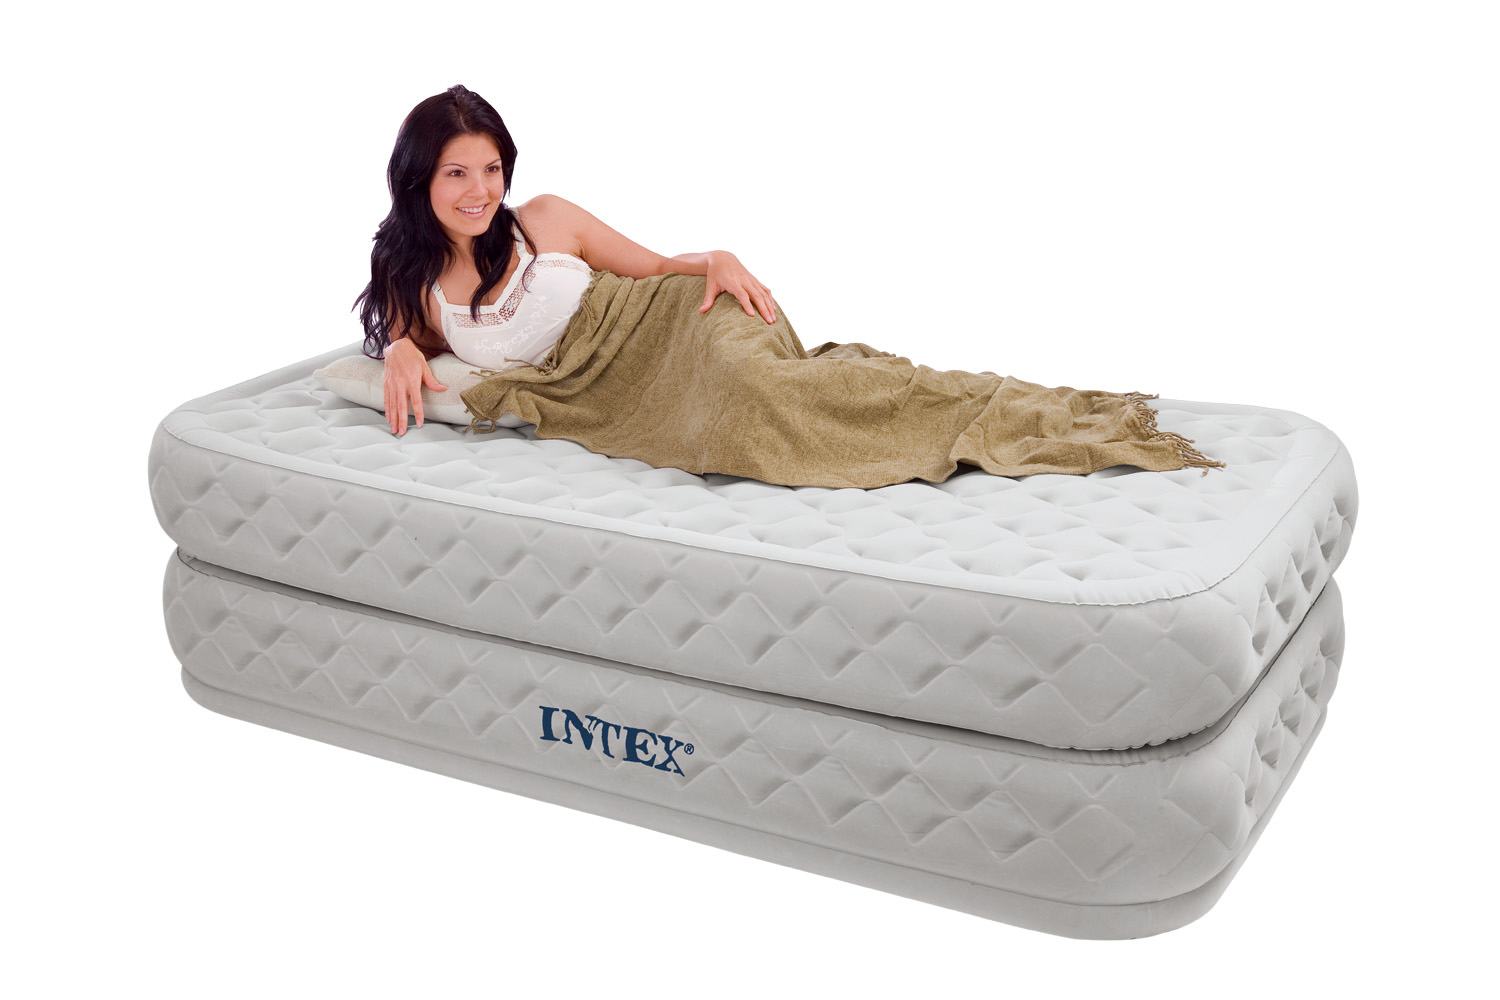 Intex Twin Supreme Air Flow Bed Raised Airbed Mattress W